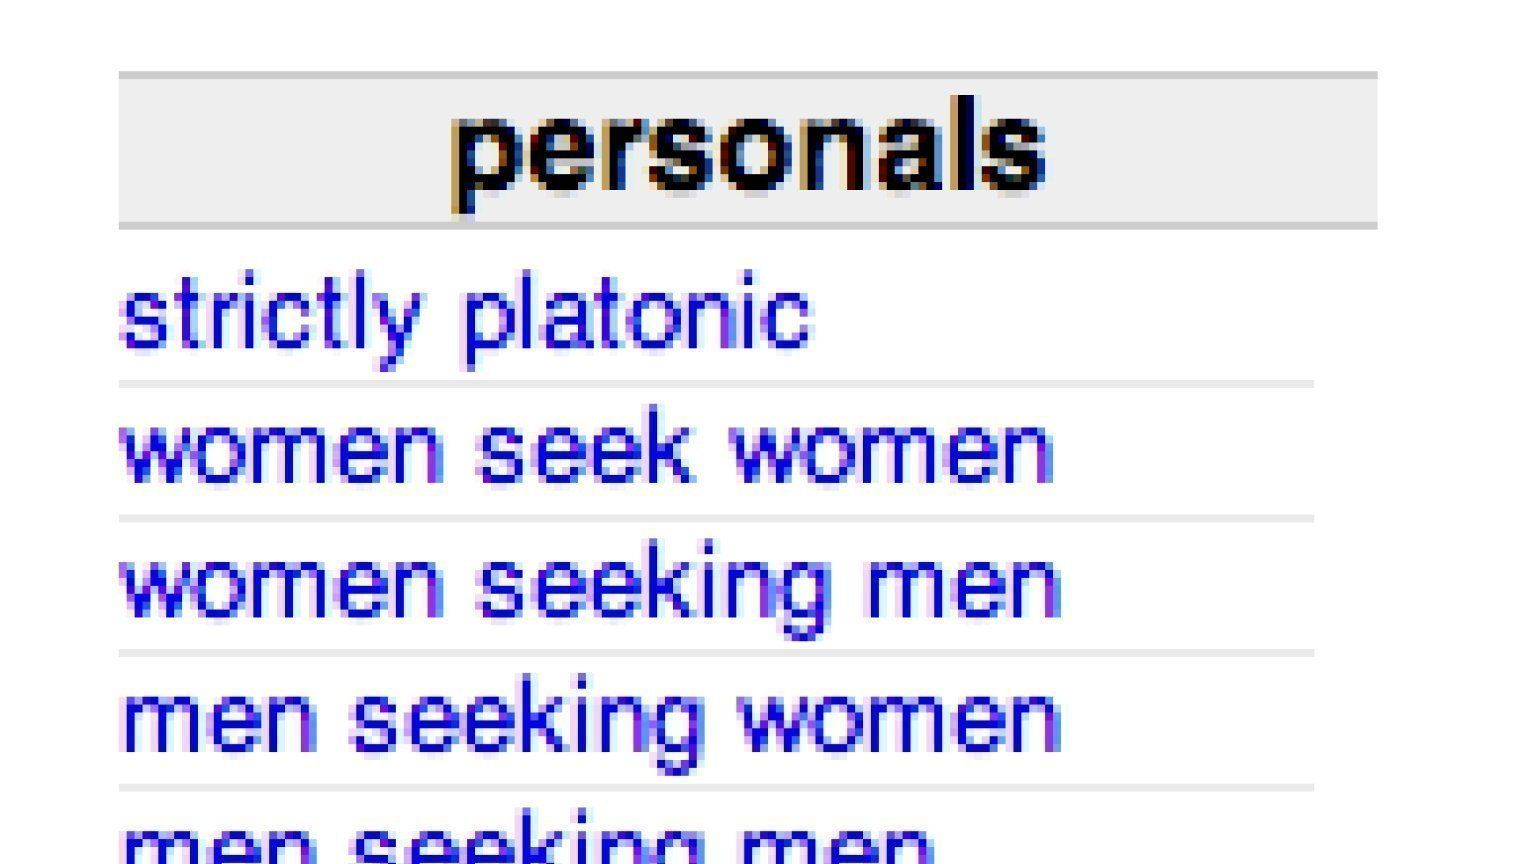 Craigslist joplin personals men seeking women